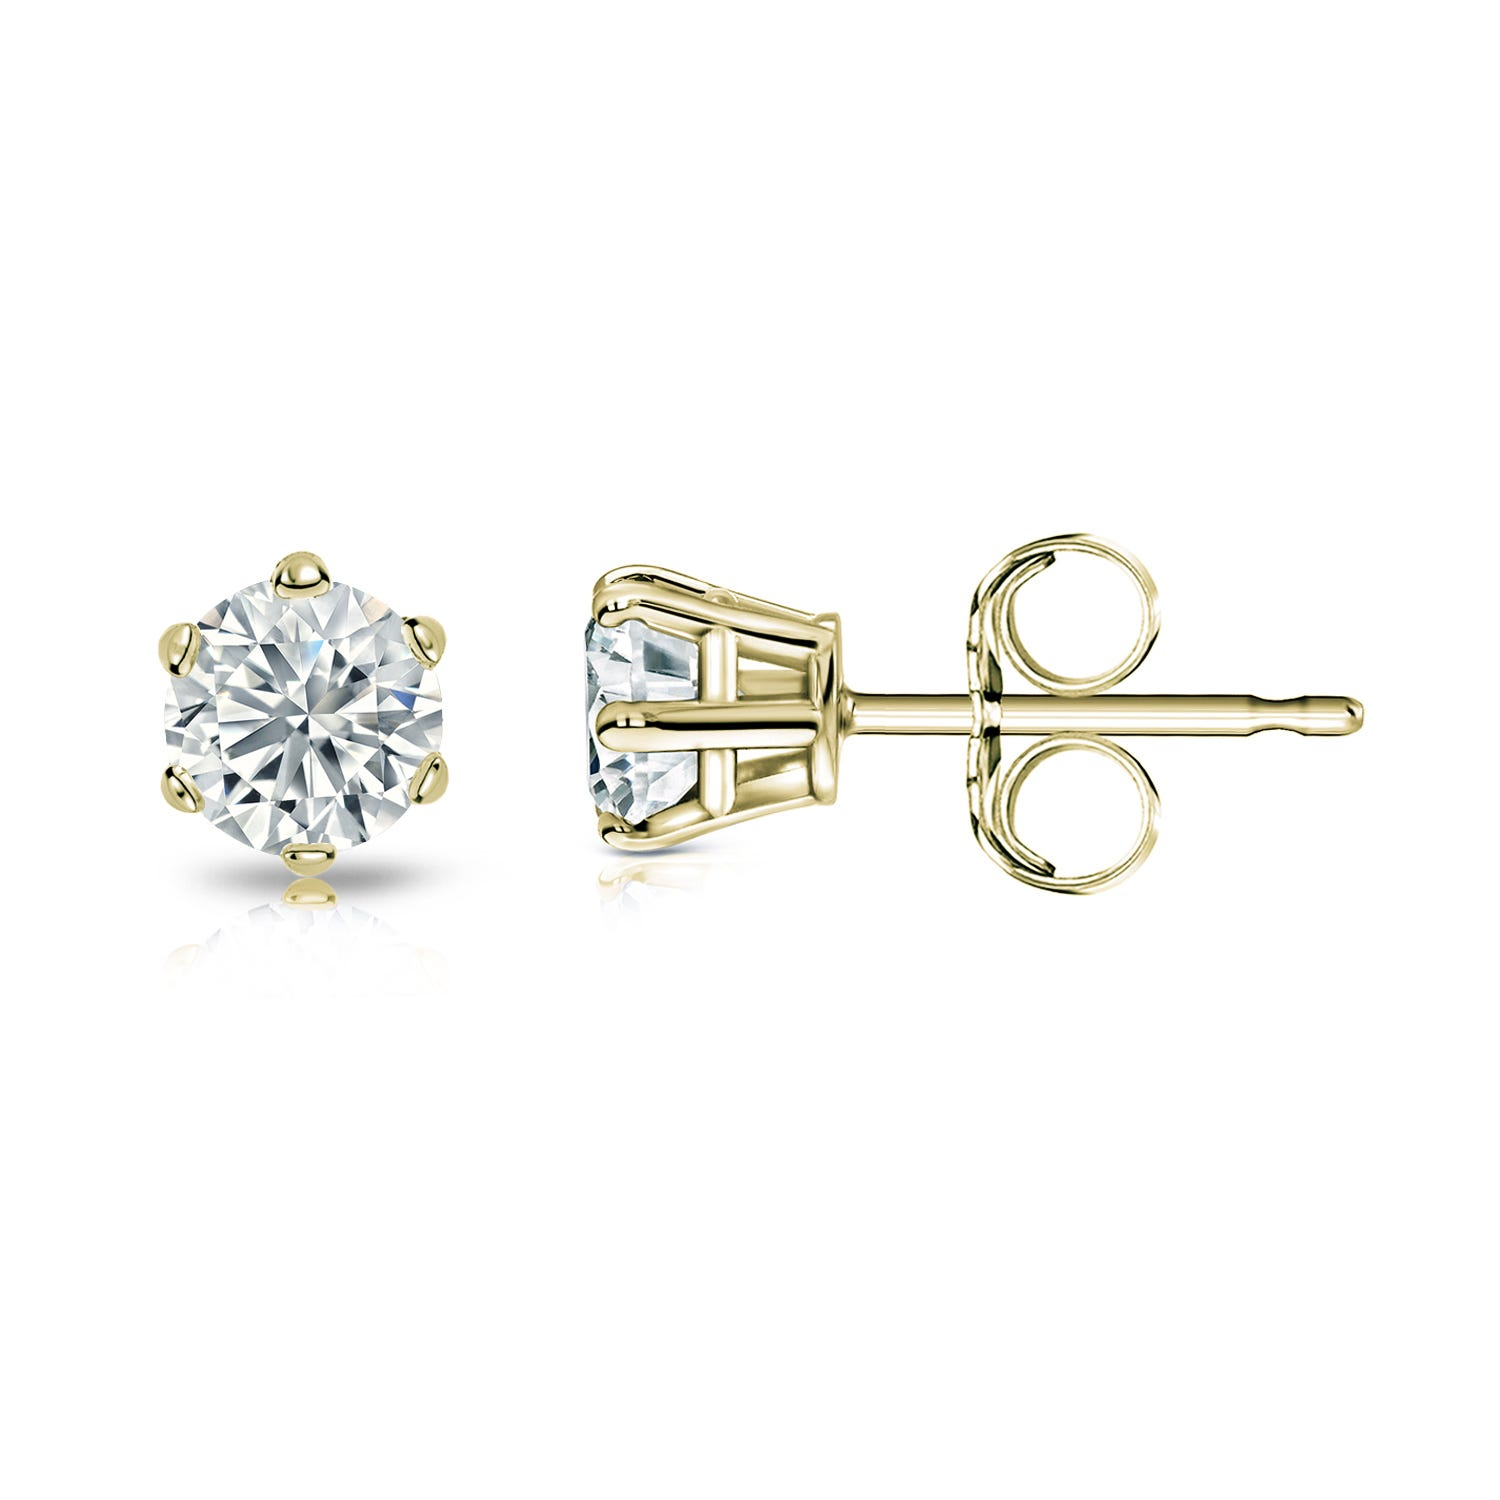 Round Diamond 1/3ctw. (IJ-VS2) Solitaire Stud 6-Prong Earrings in 14K Yellow Gold